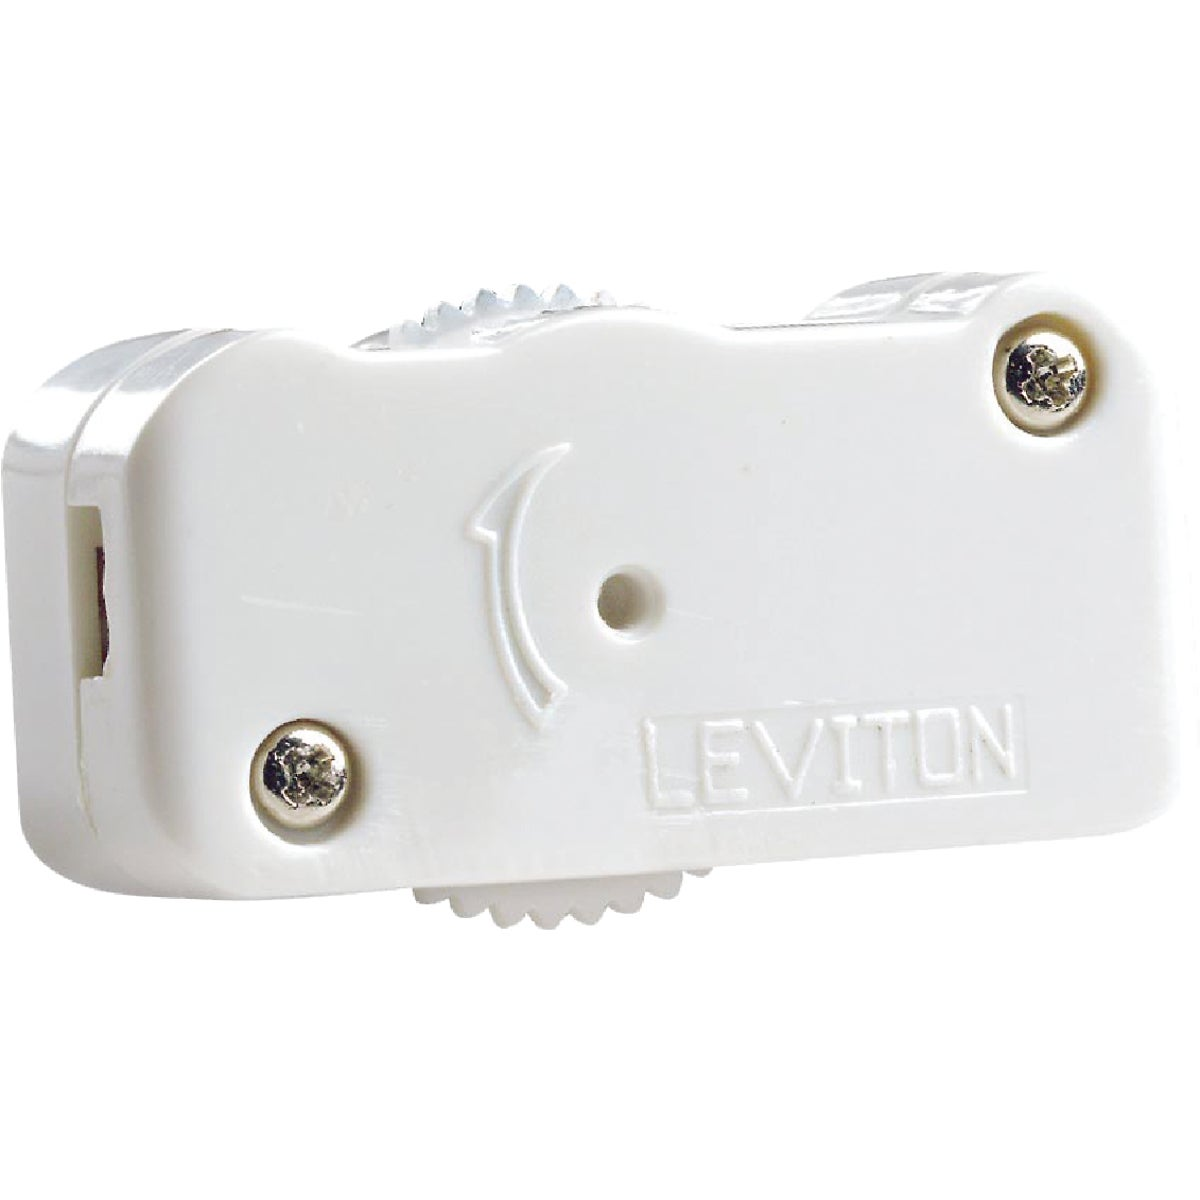 WHT CORD DIMMER - C22-01420-W by Leviton Mfg Co